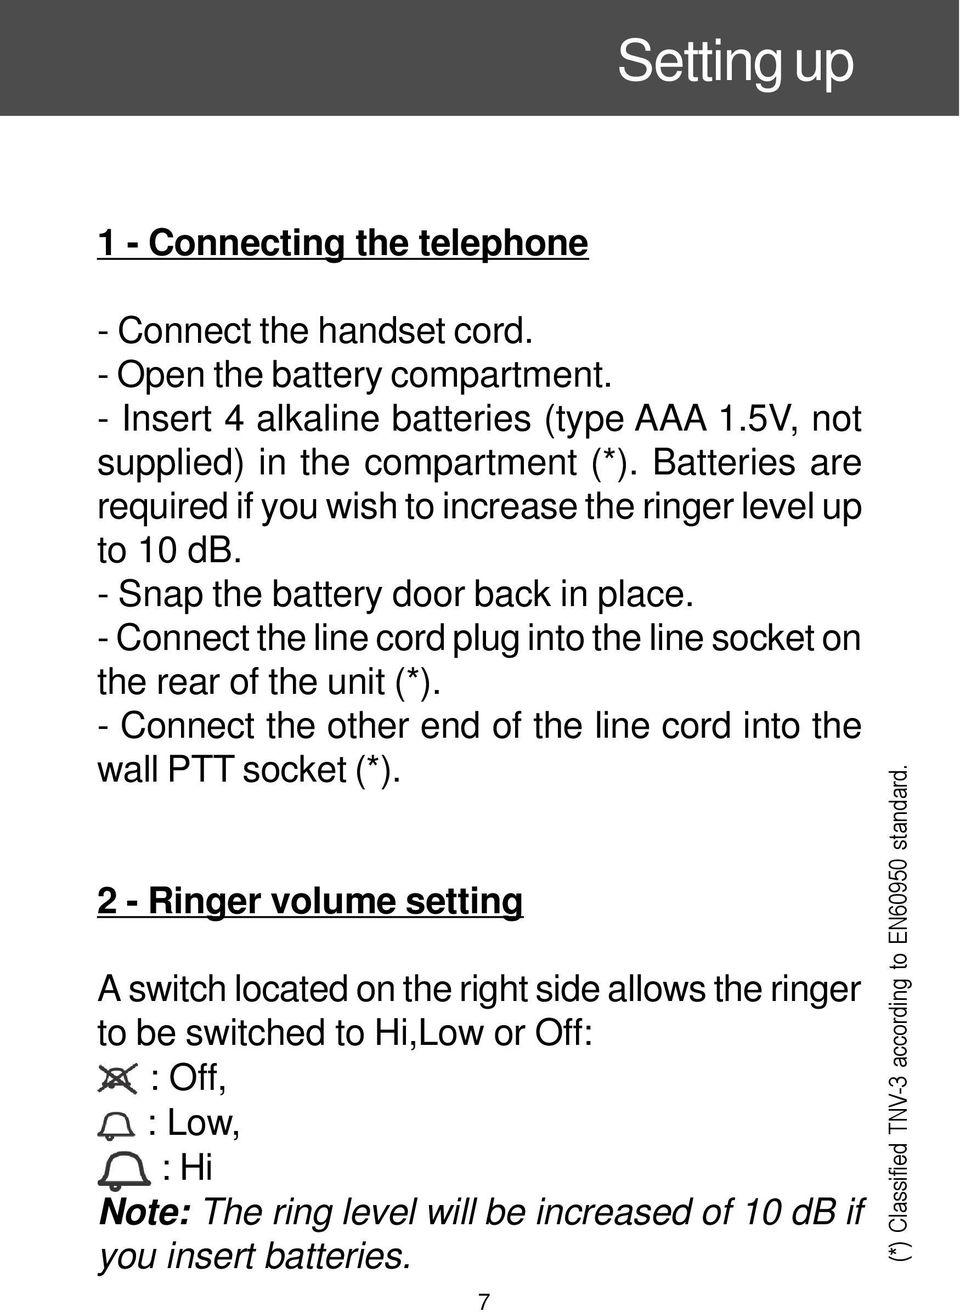 - Connect the line cord plug into the line socket on the rear of the unit (*). - Connect the other end of the line cord into the wall PTT socket (*).